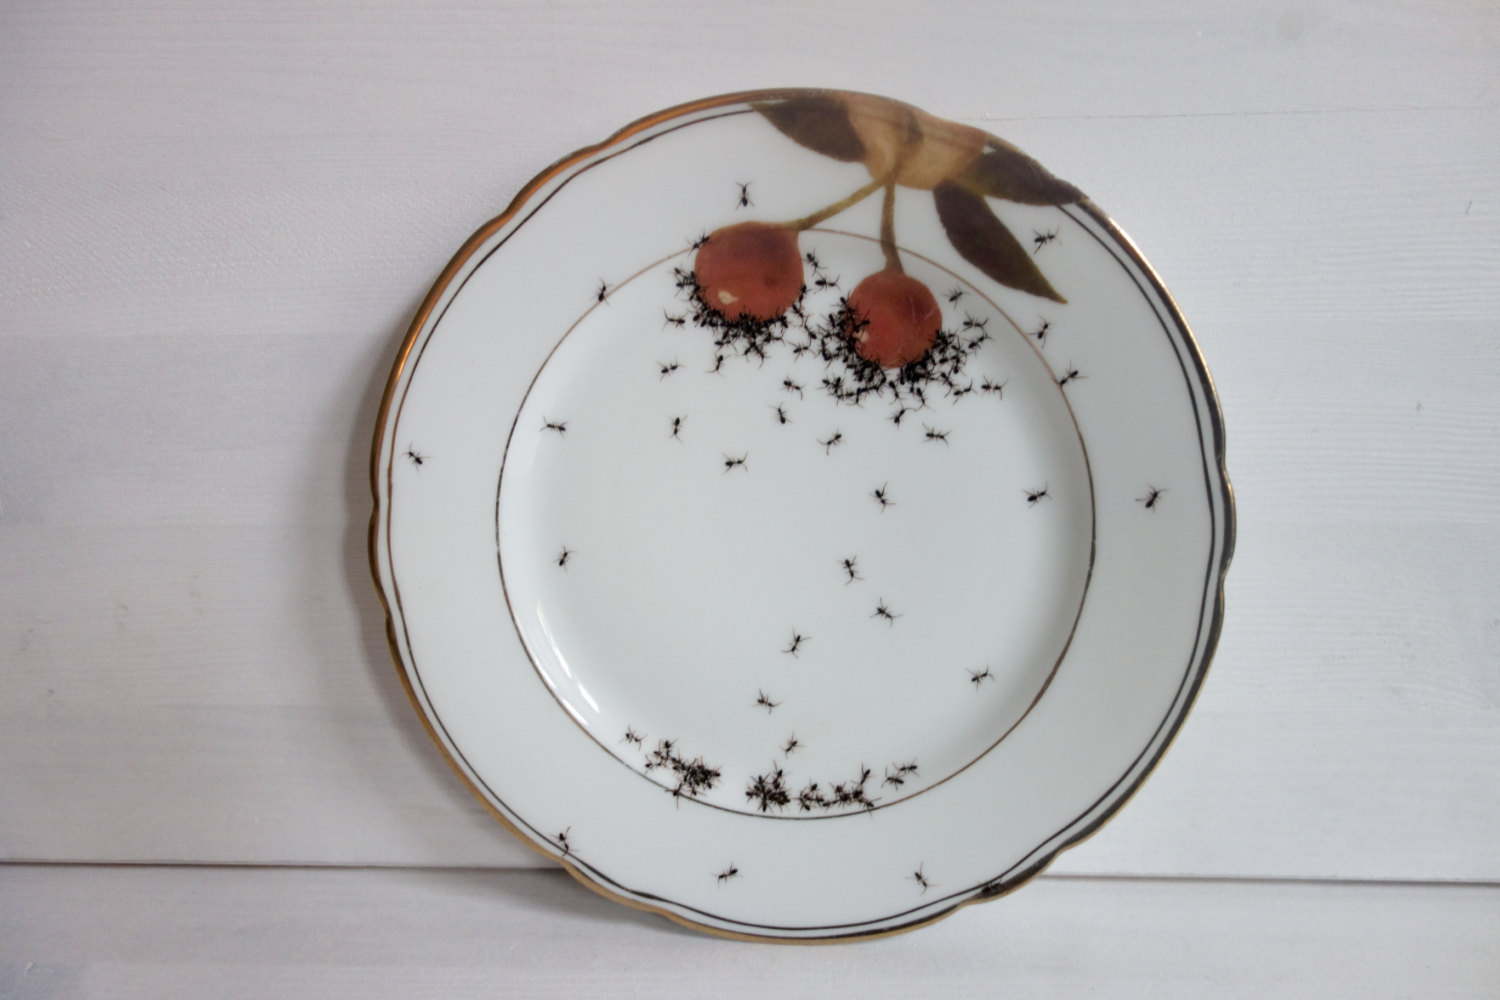 Plate 3 - Hand Painted Porcelain Plate by La Philie - Evelyn Bracklow